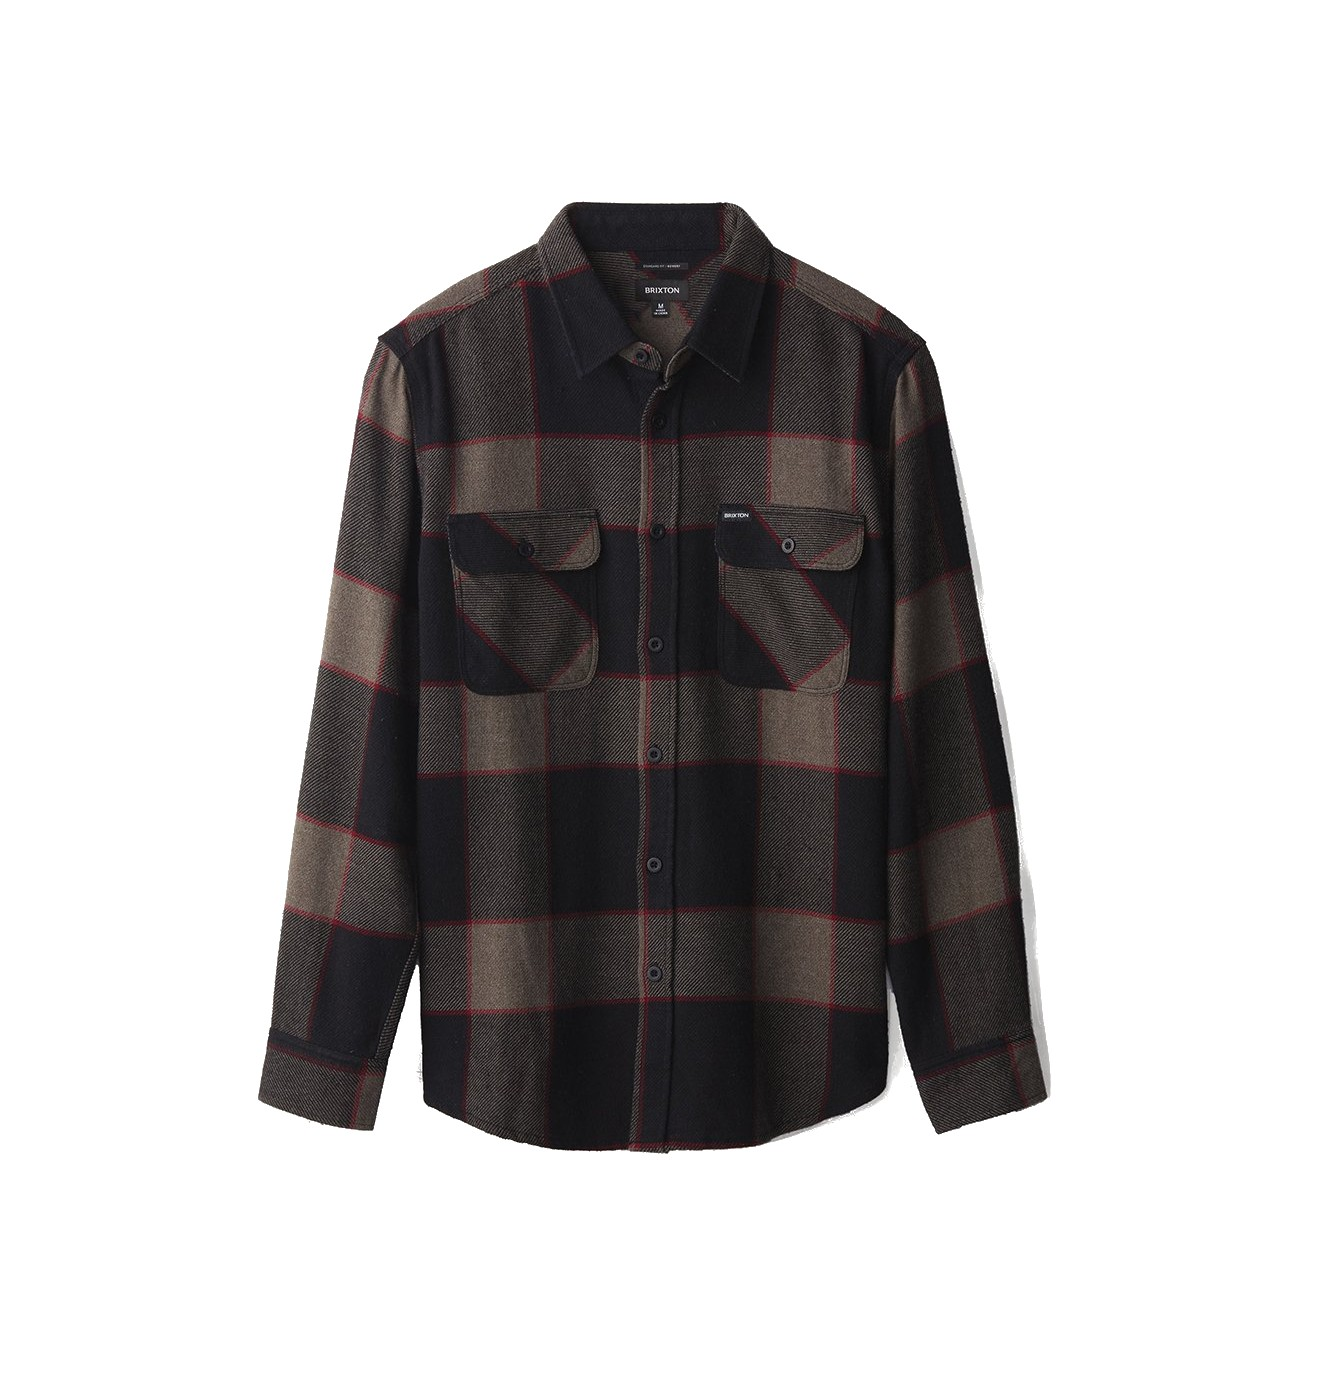 BRIXTON BOWERY TALL FLANNEL OVERHEMD - HEATHER GREY/CHARCOAL